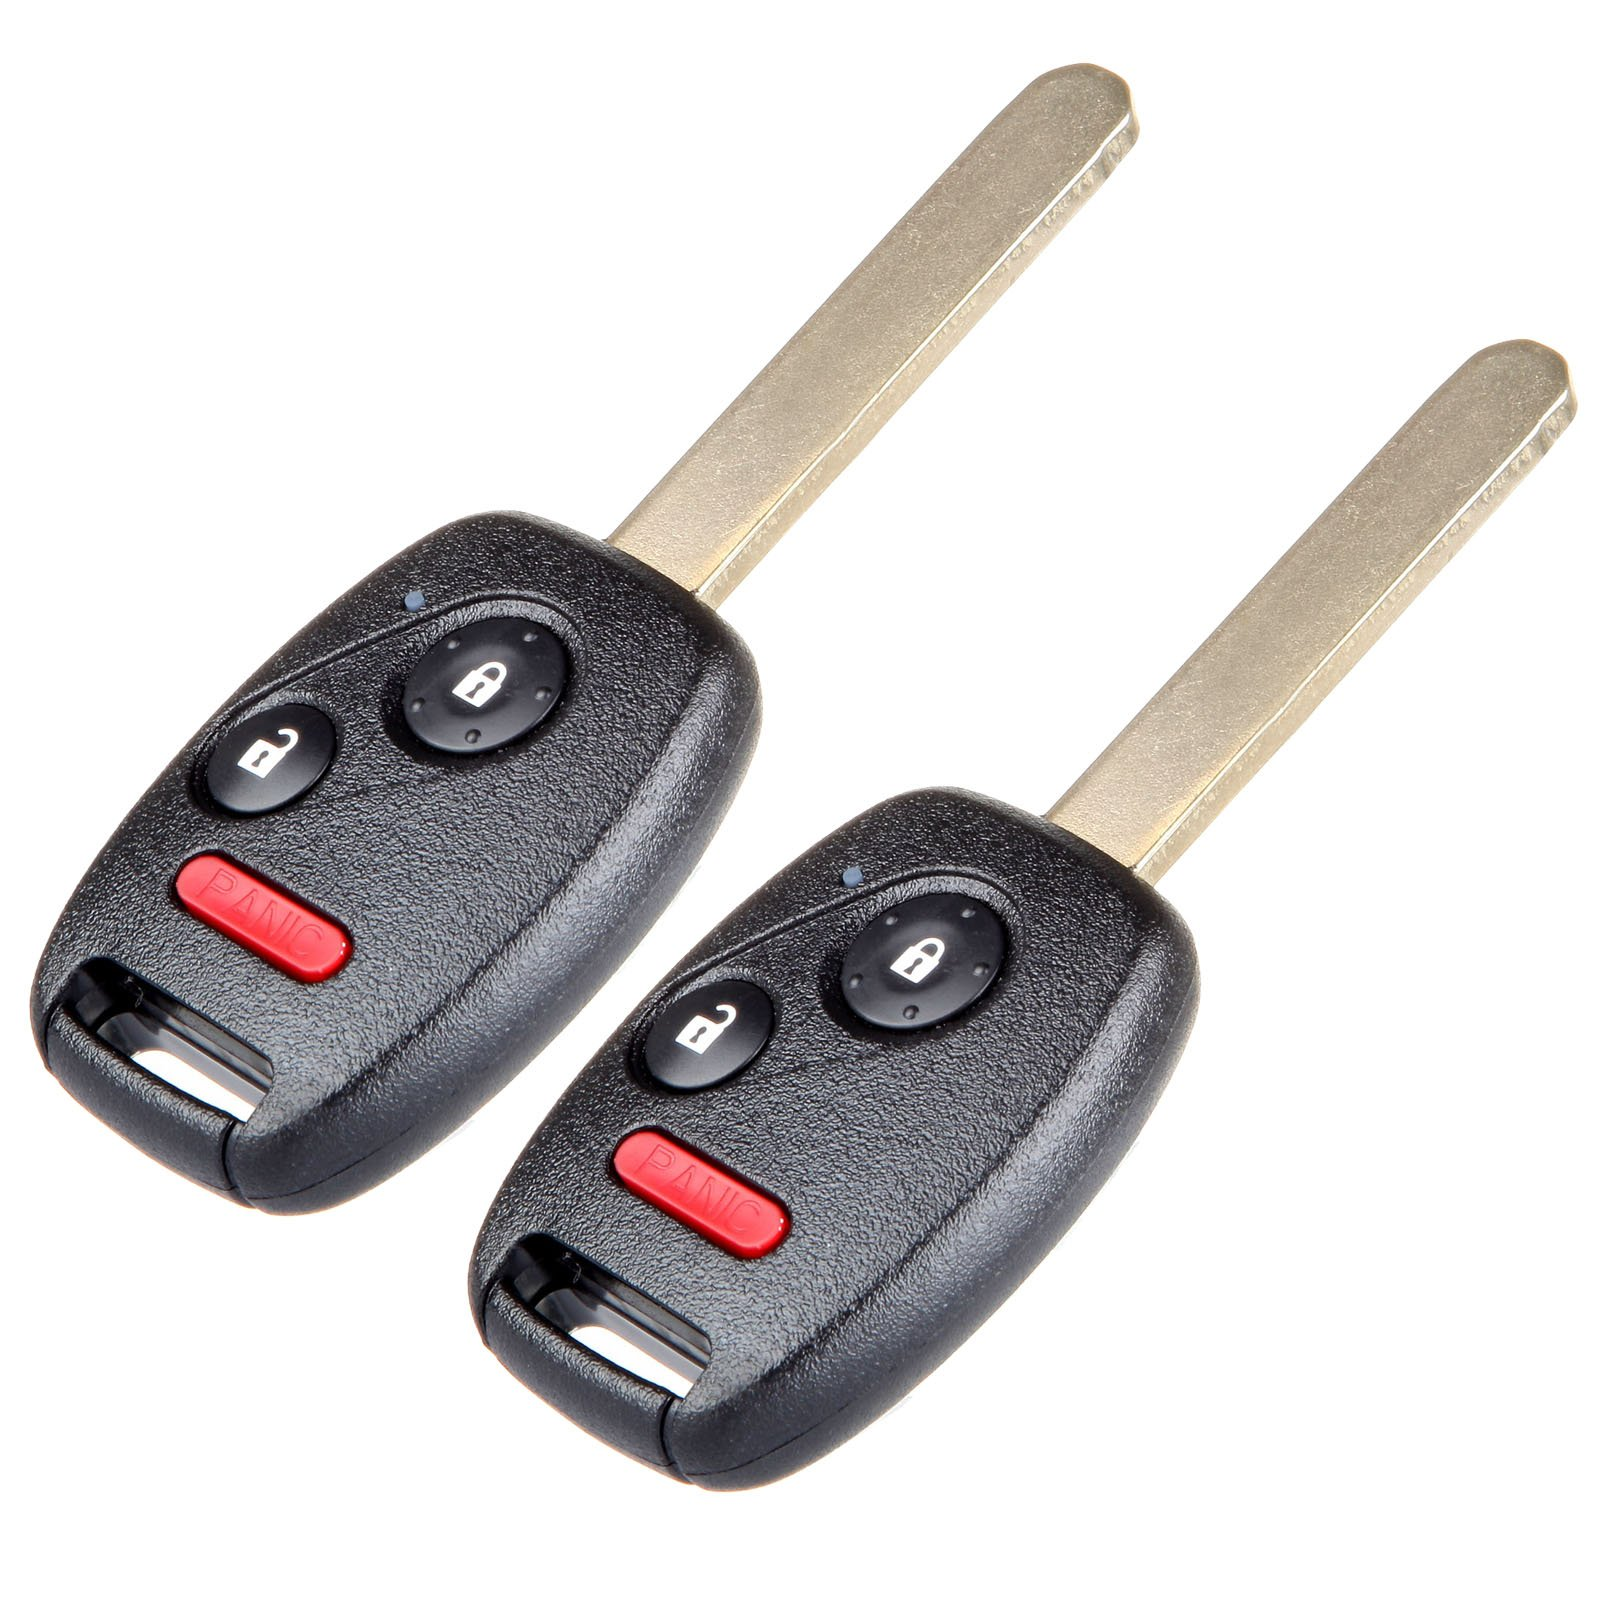 SCITOO 2X Uncut Ignition Keyless Entry Car Remote Transmitter Fob 3 Button Replacement fit Honda Civic Lx Odyssey N5F-S0084A